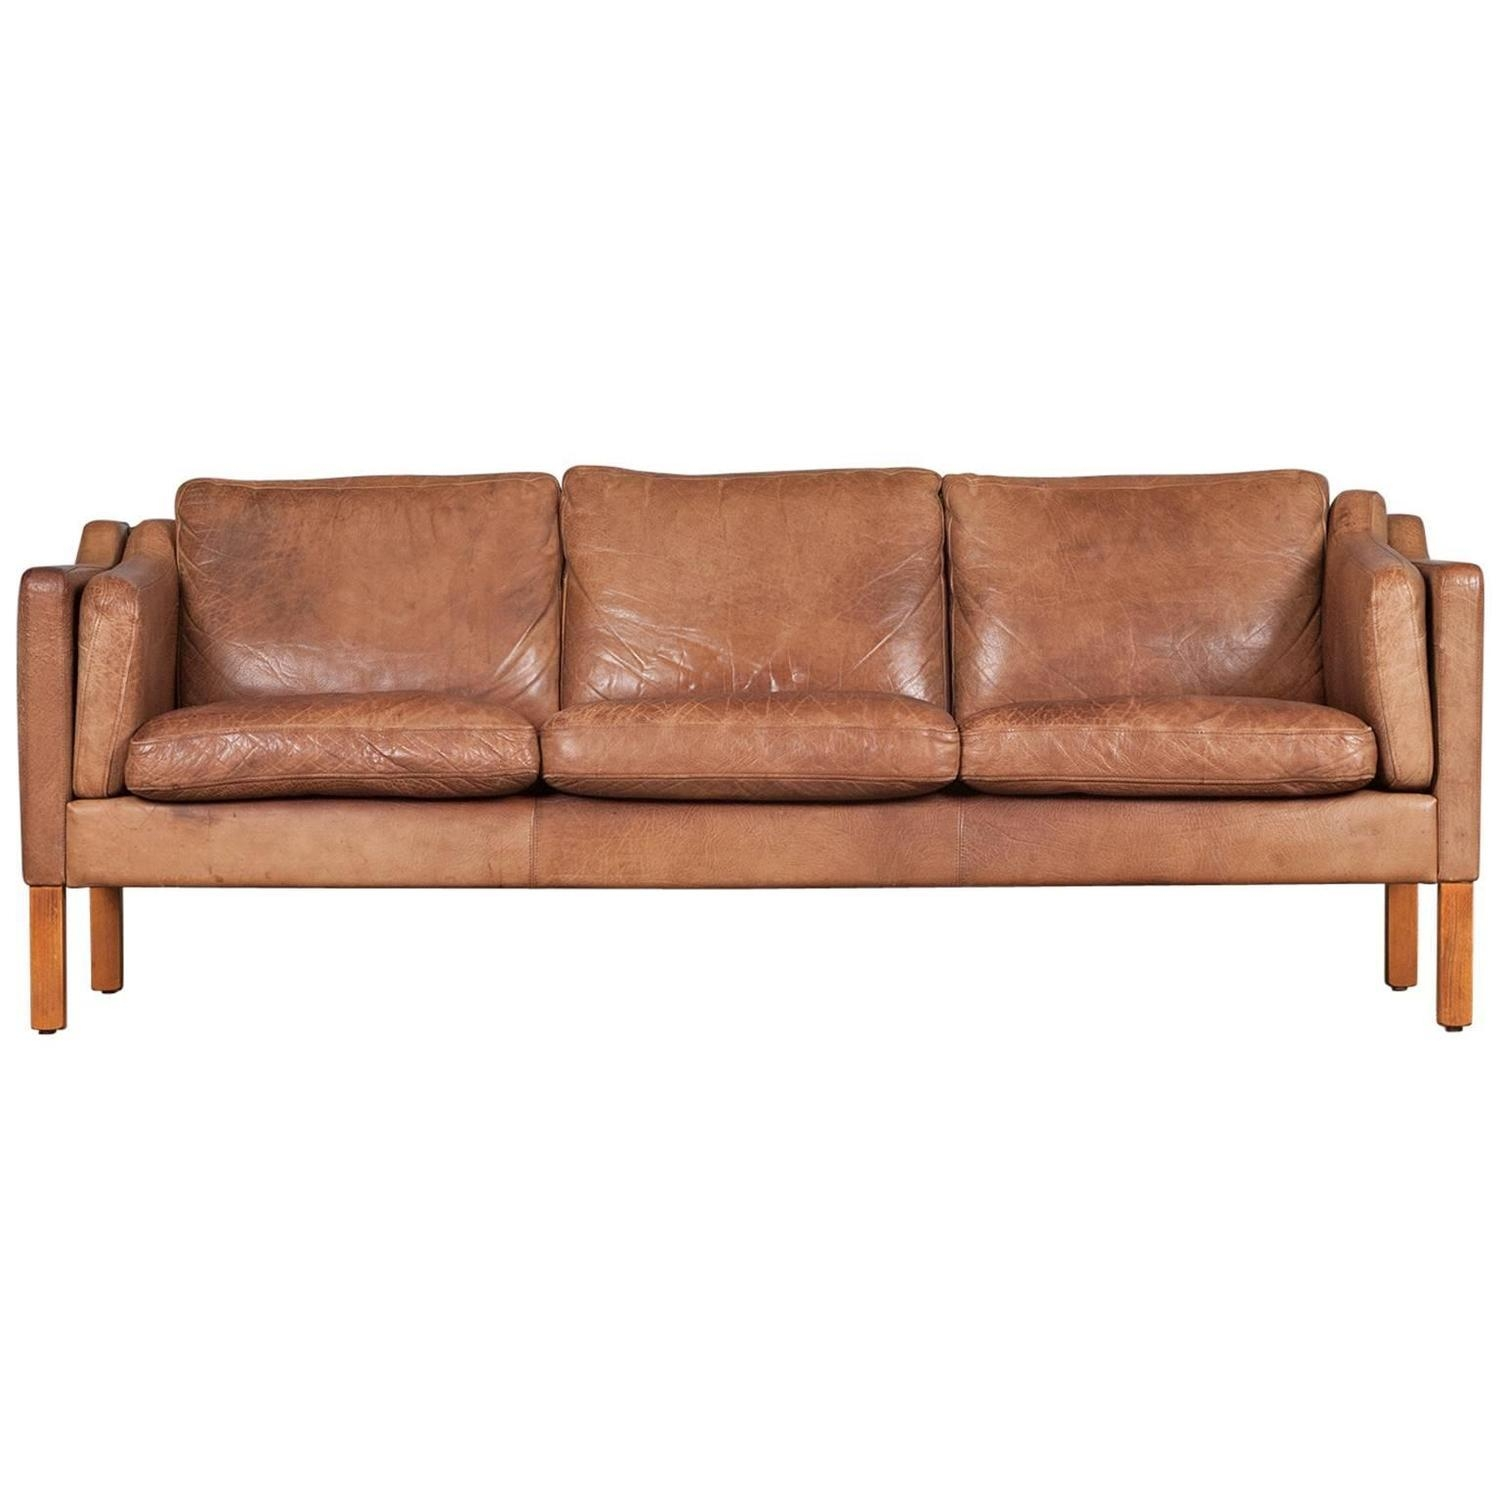 camel colored leather sofas sofa 250 lb tablet 2018 latest ideas